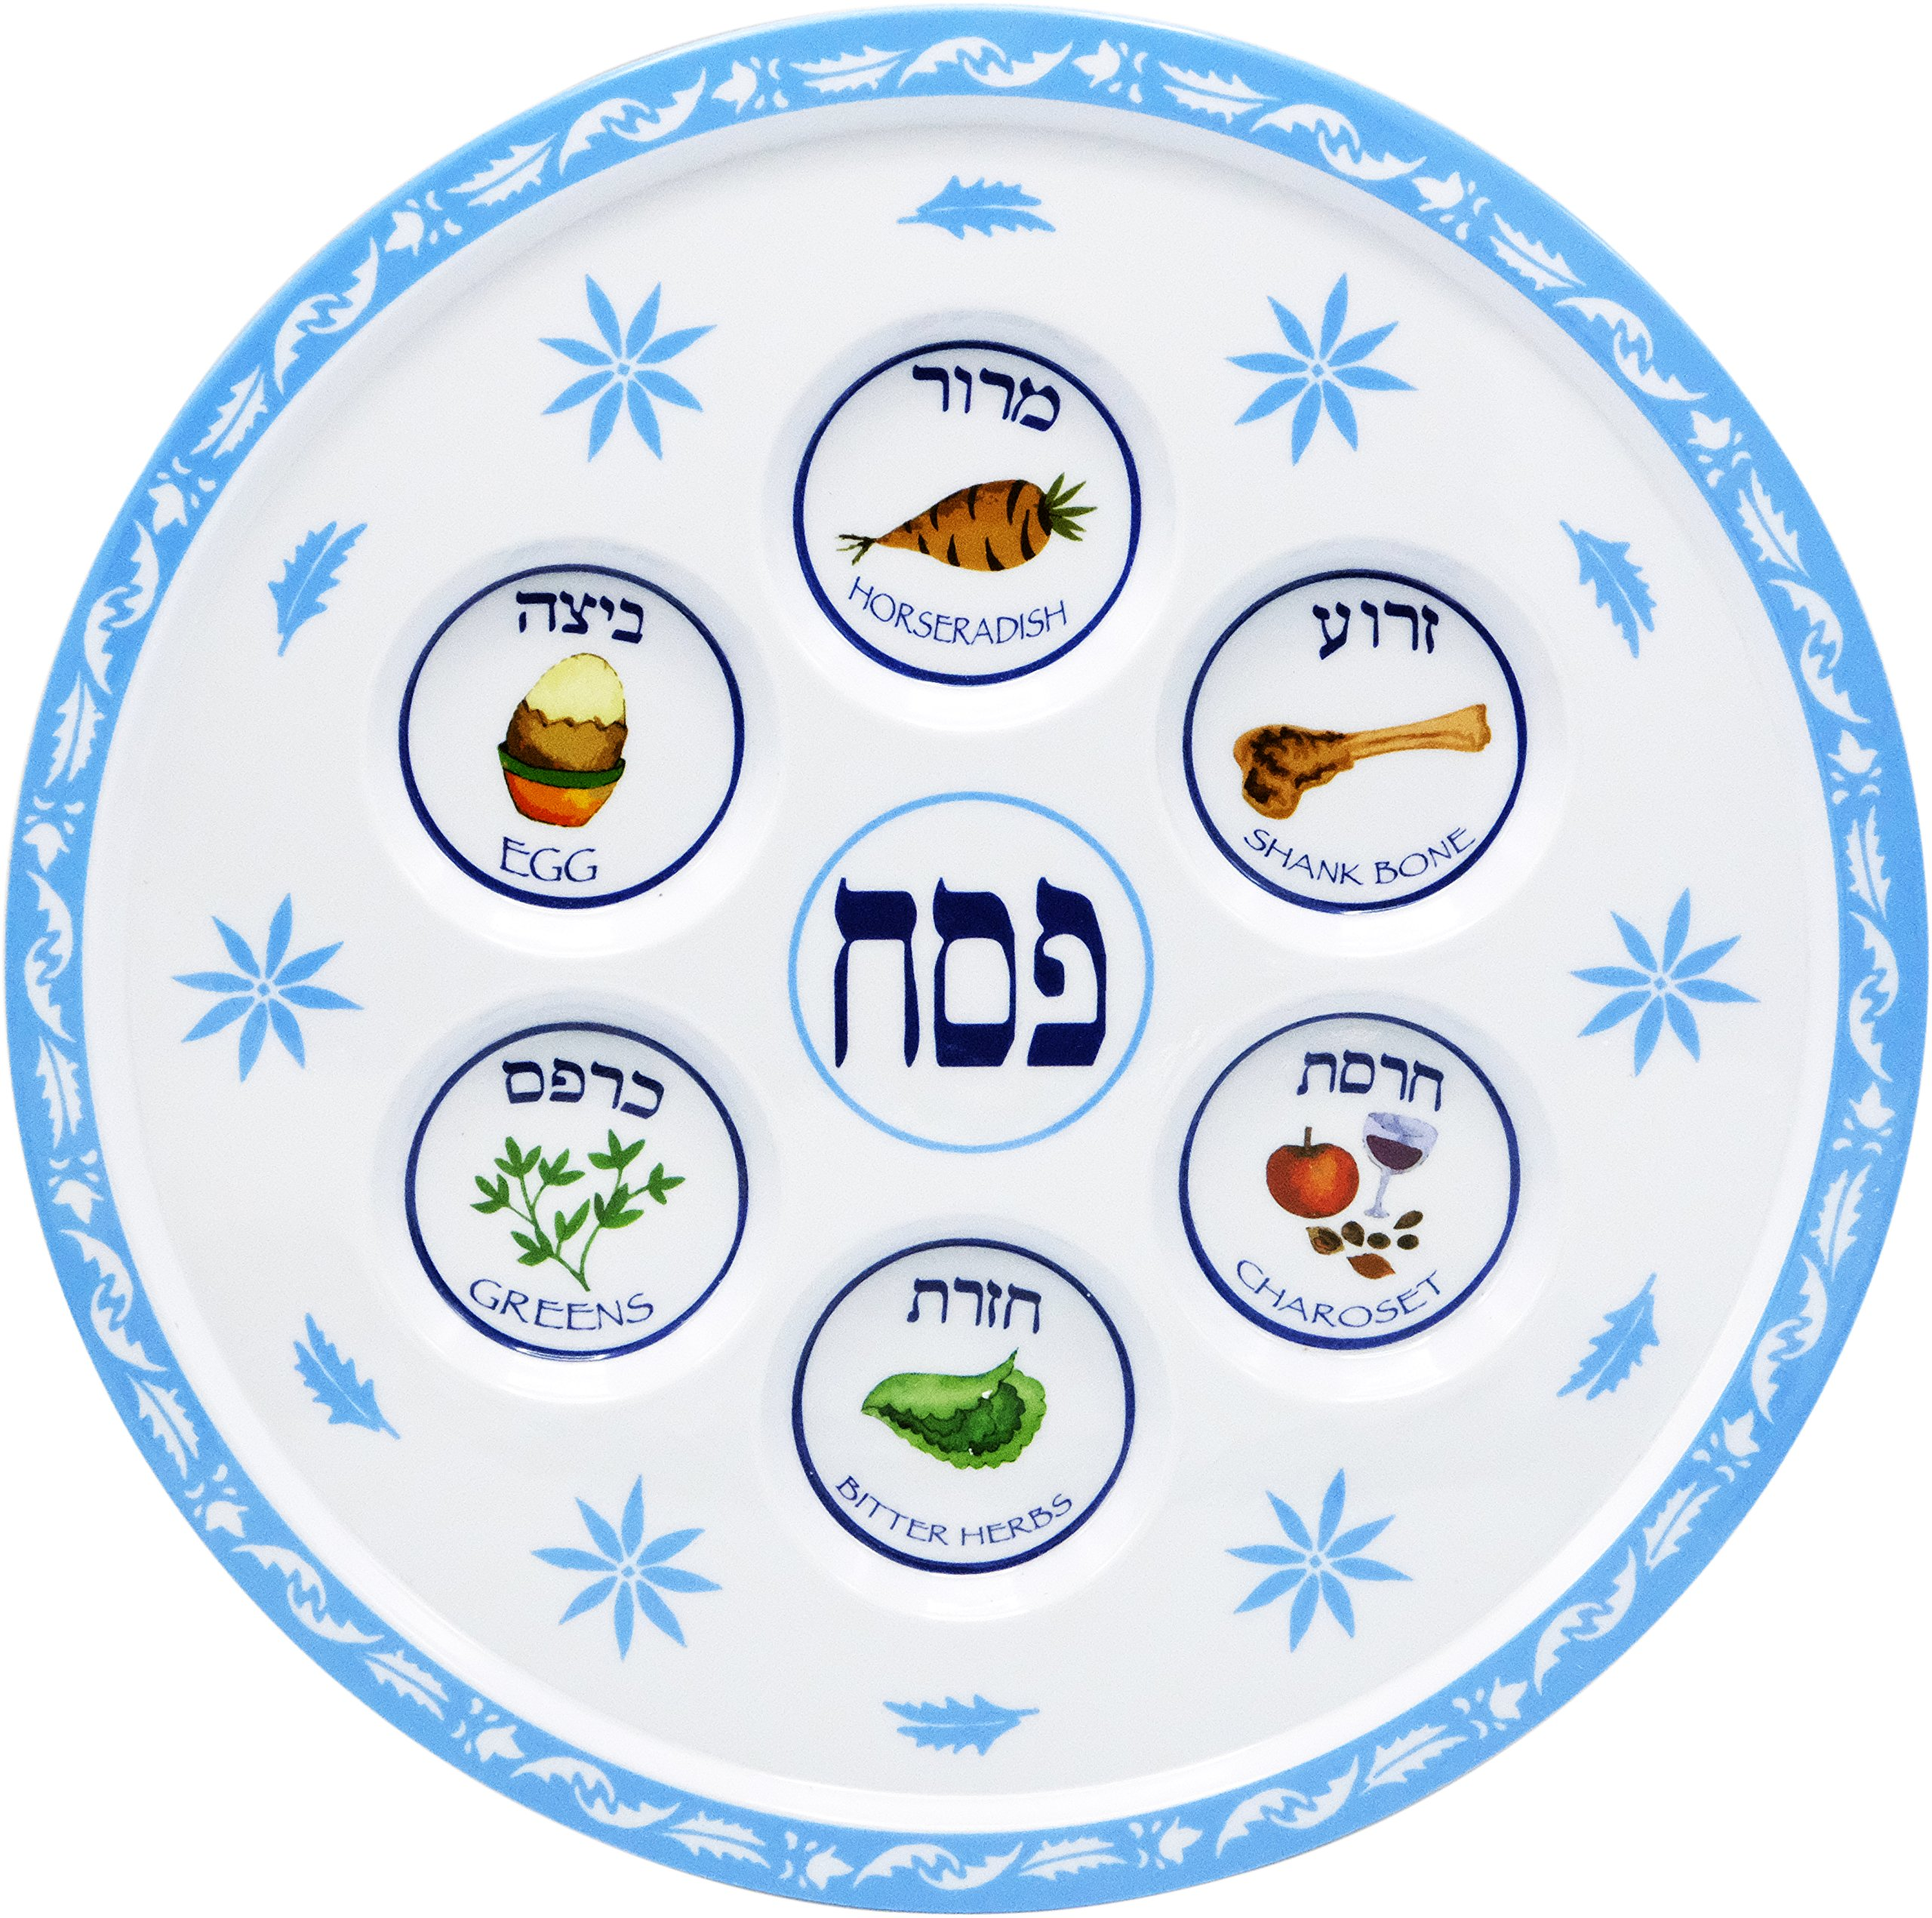 image relating to Printable Seder Plate titled Simplest Ranked within Seder Plates Effective Client Testimonials